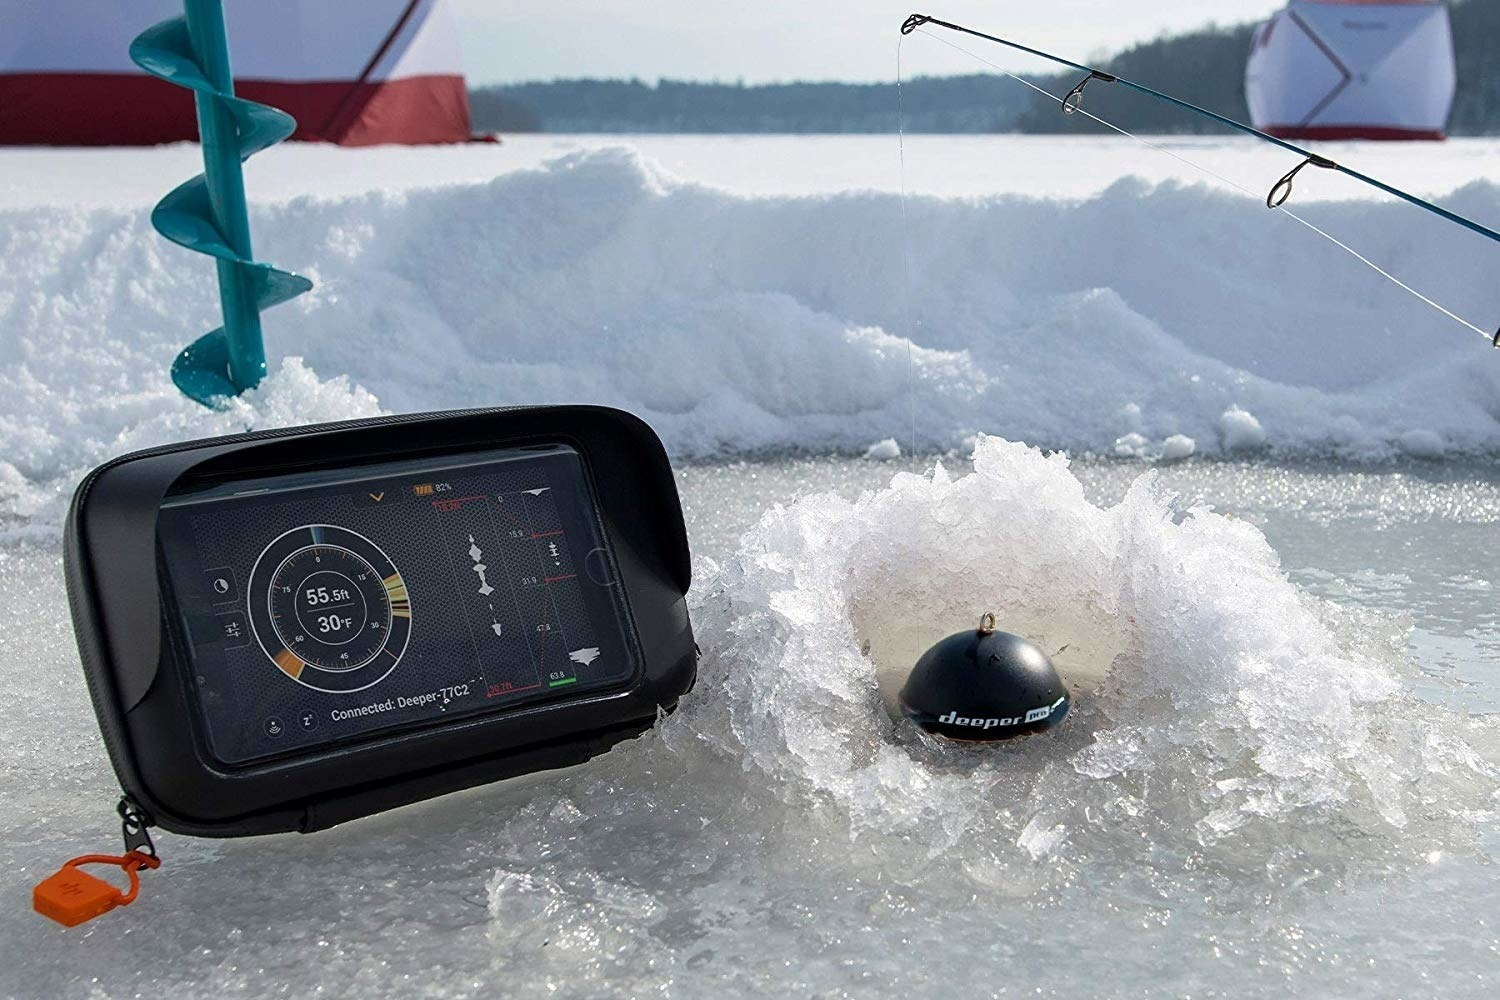 A Deeper Smart Sonar That Scans The Water So Fishing Fanatic In Your Life Has All Information They Need To Make Perfect Cast